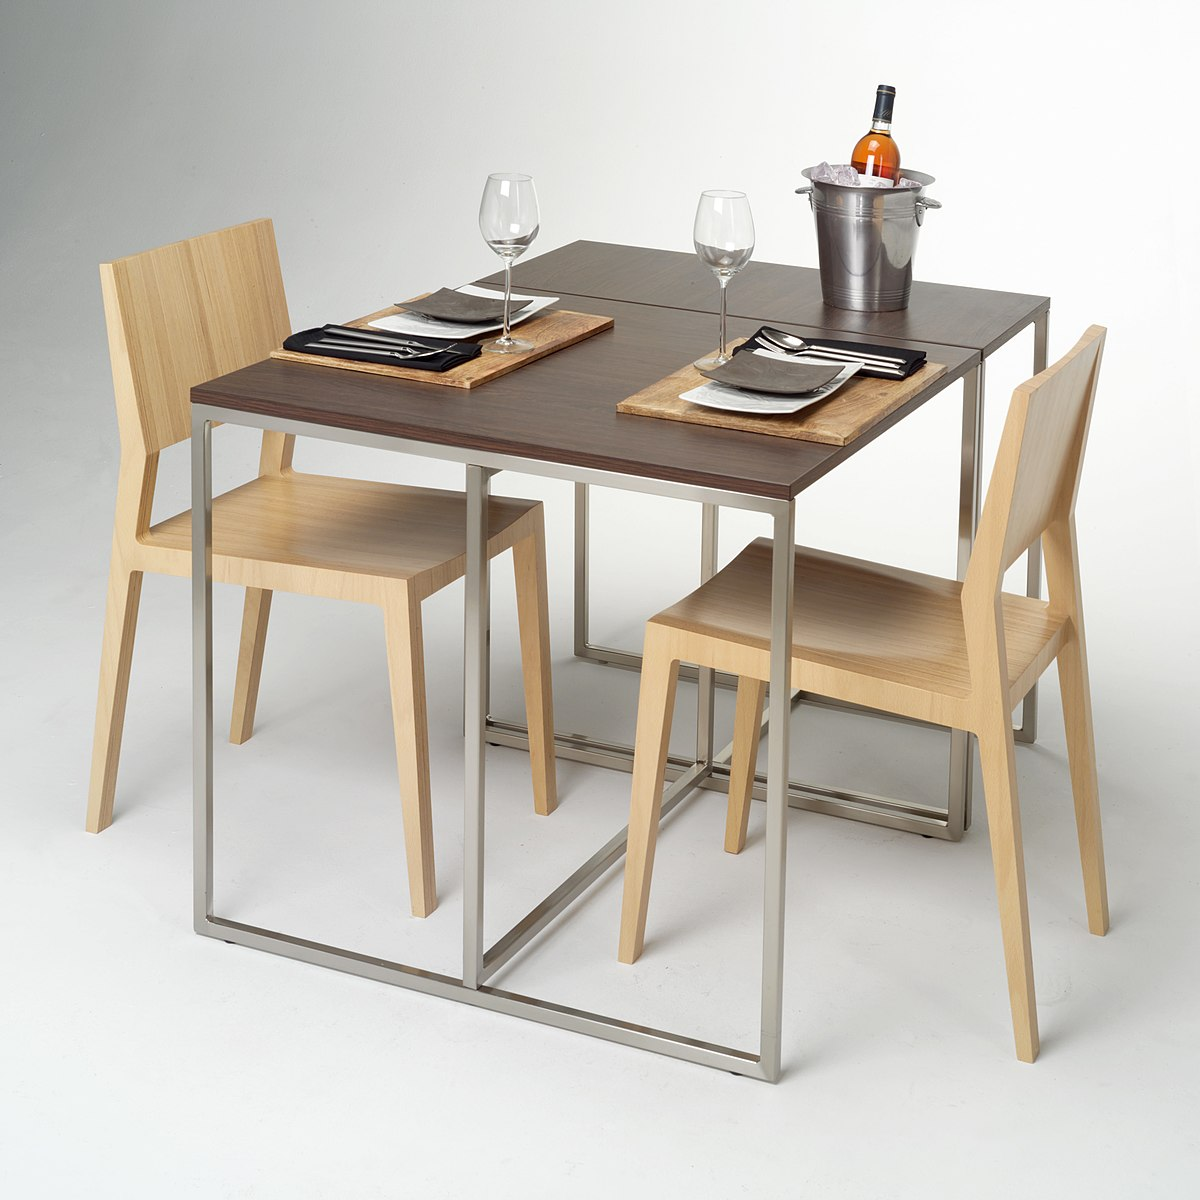 Furniture wikipedia for The best dining tables